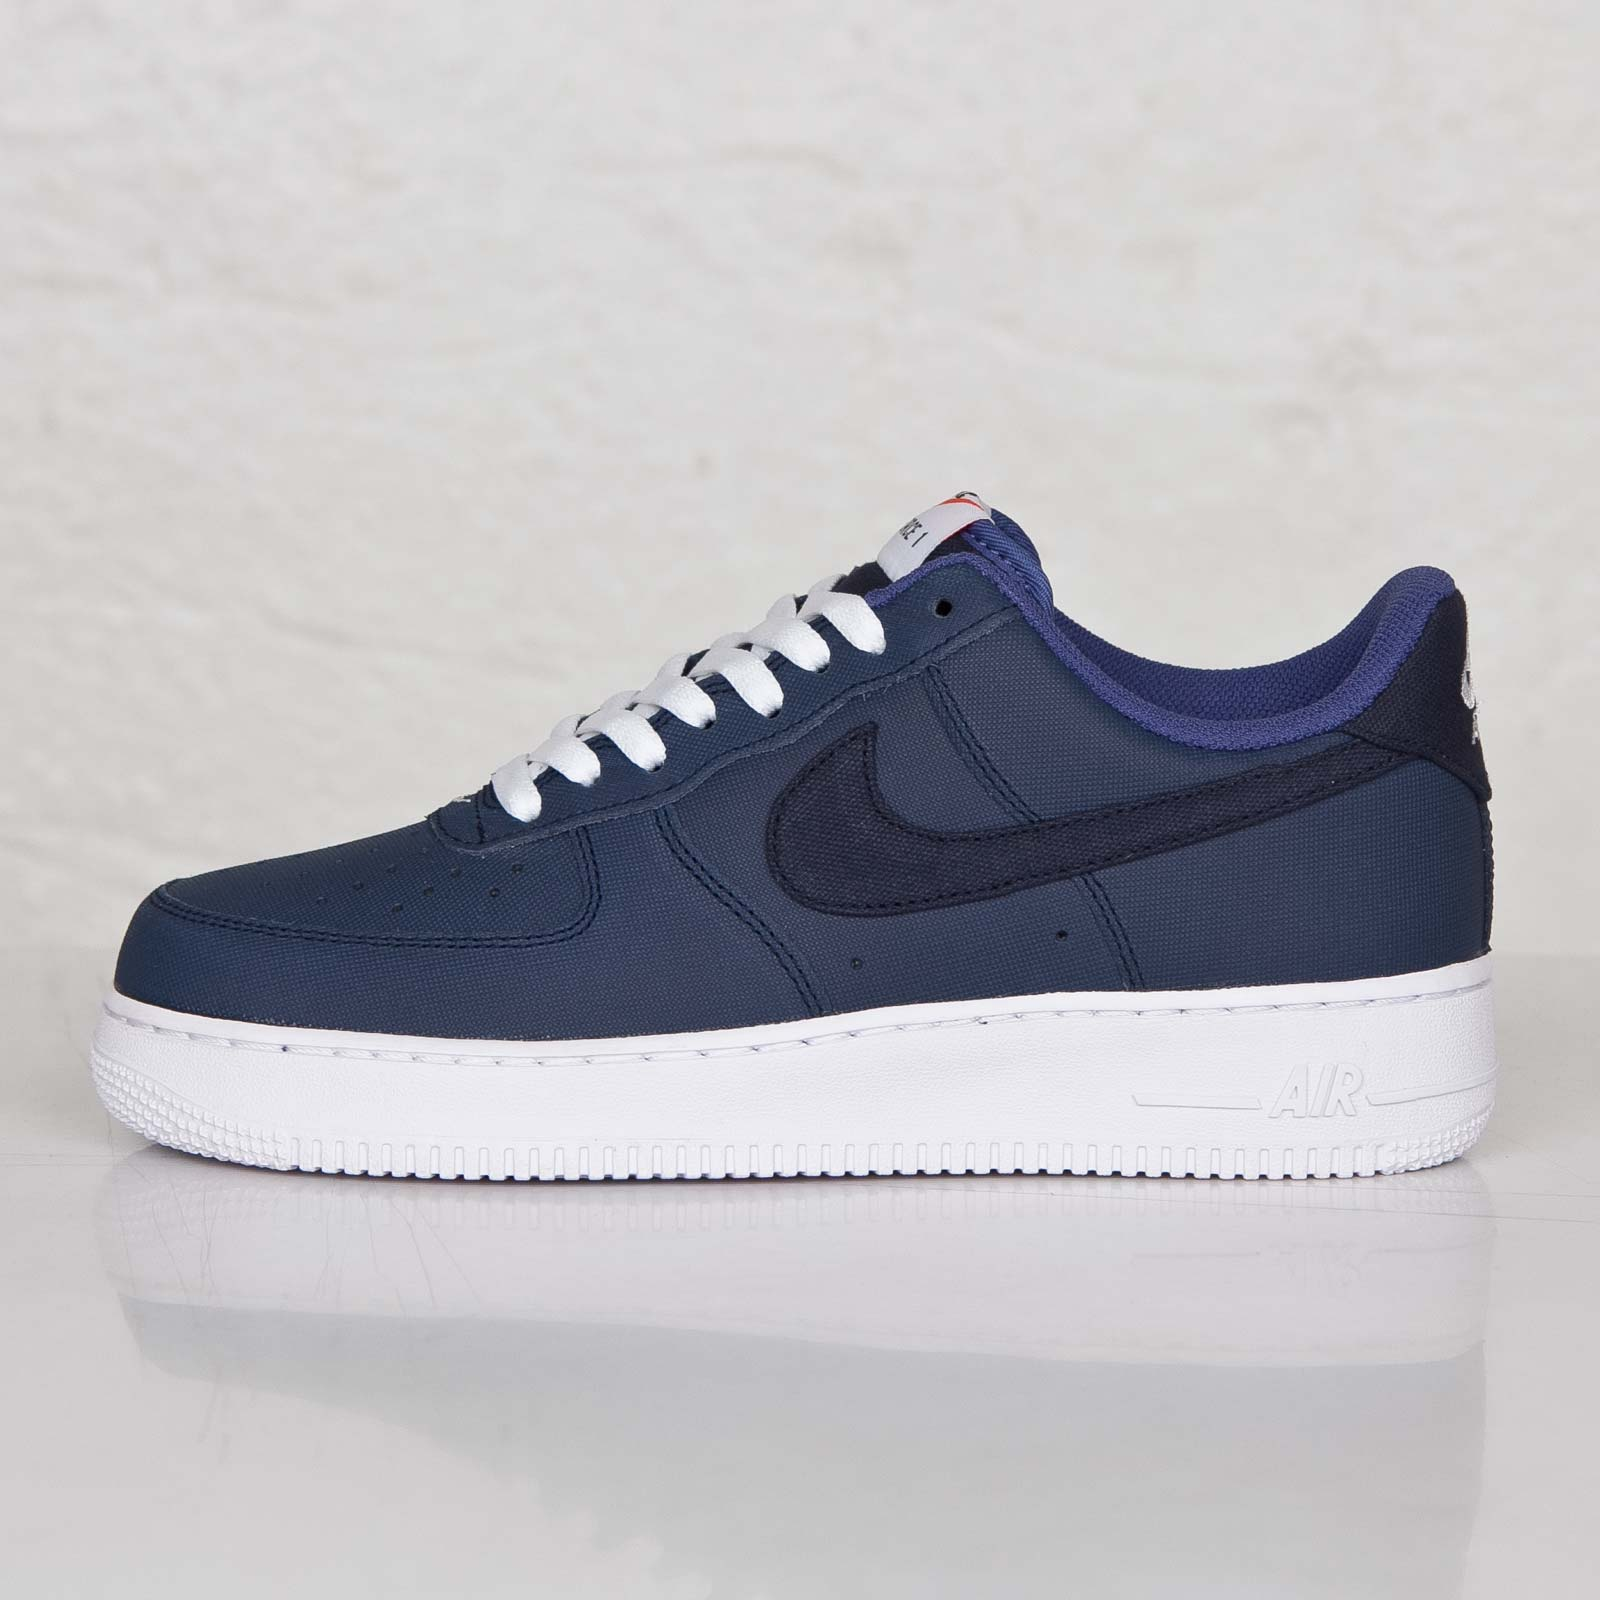 nike air force 1 low obsidian white blue legend air. Black Bedroom Furniture Sets. Home Design Ideas